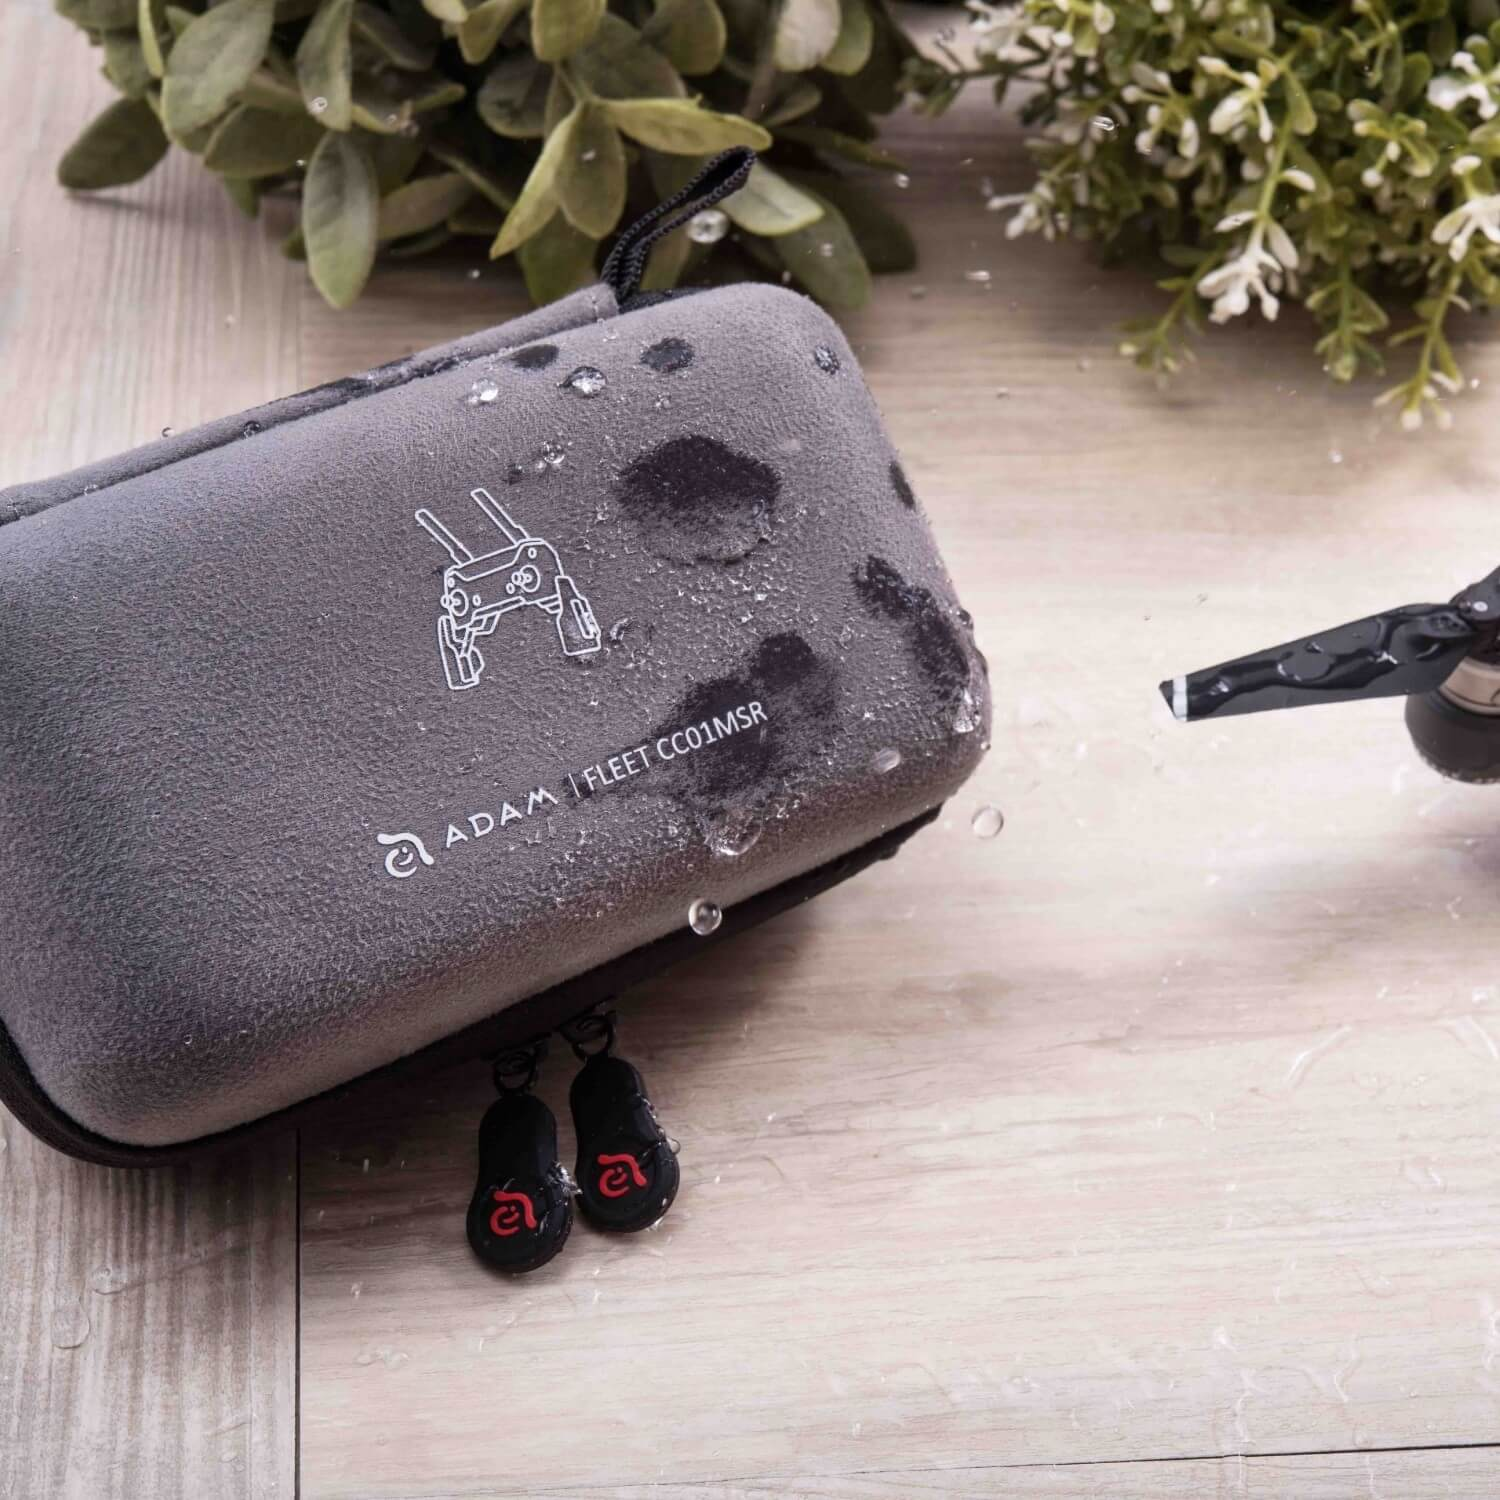 Adam elements Fleet carrying Hardshell case for Mavic pro /& Remote Controller